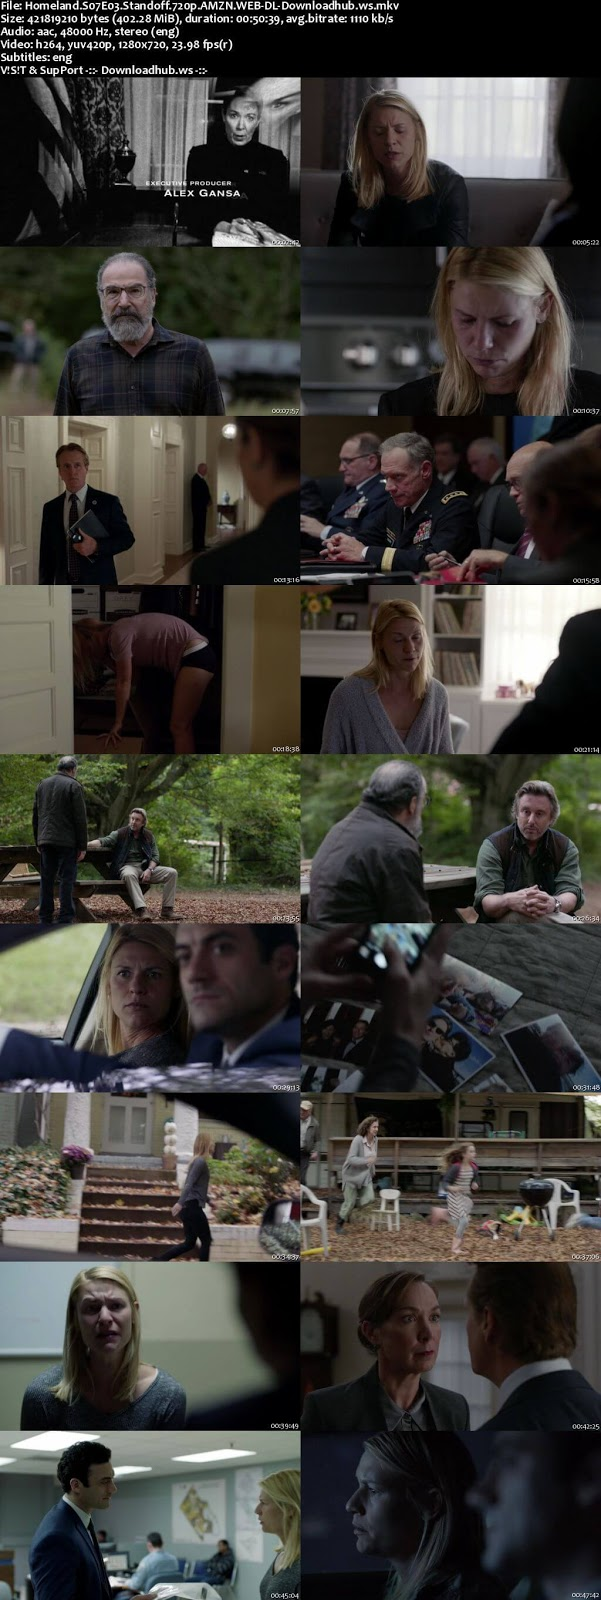 Homeland S07E03 400MB WEB-DL 720p ESubs